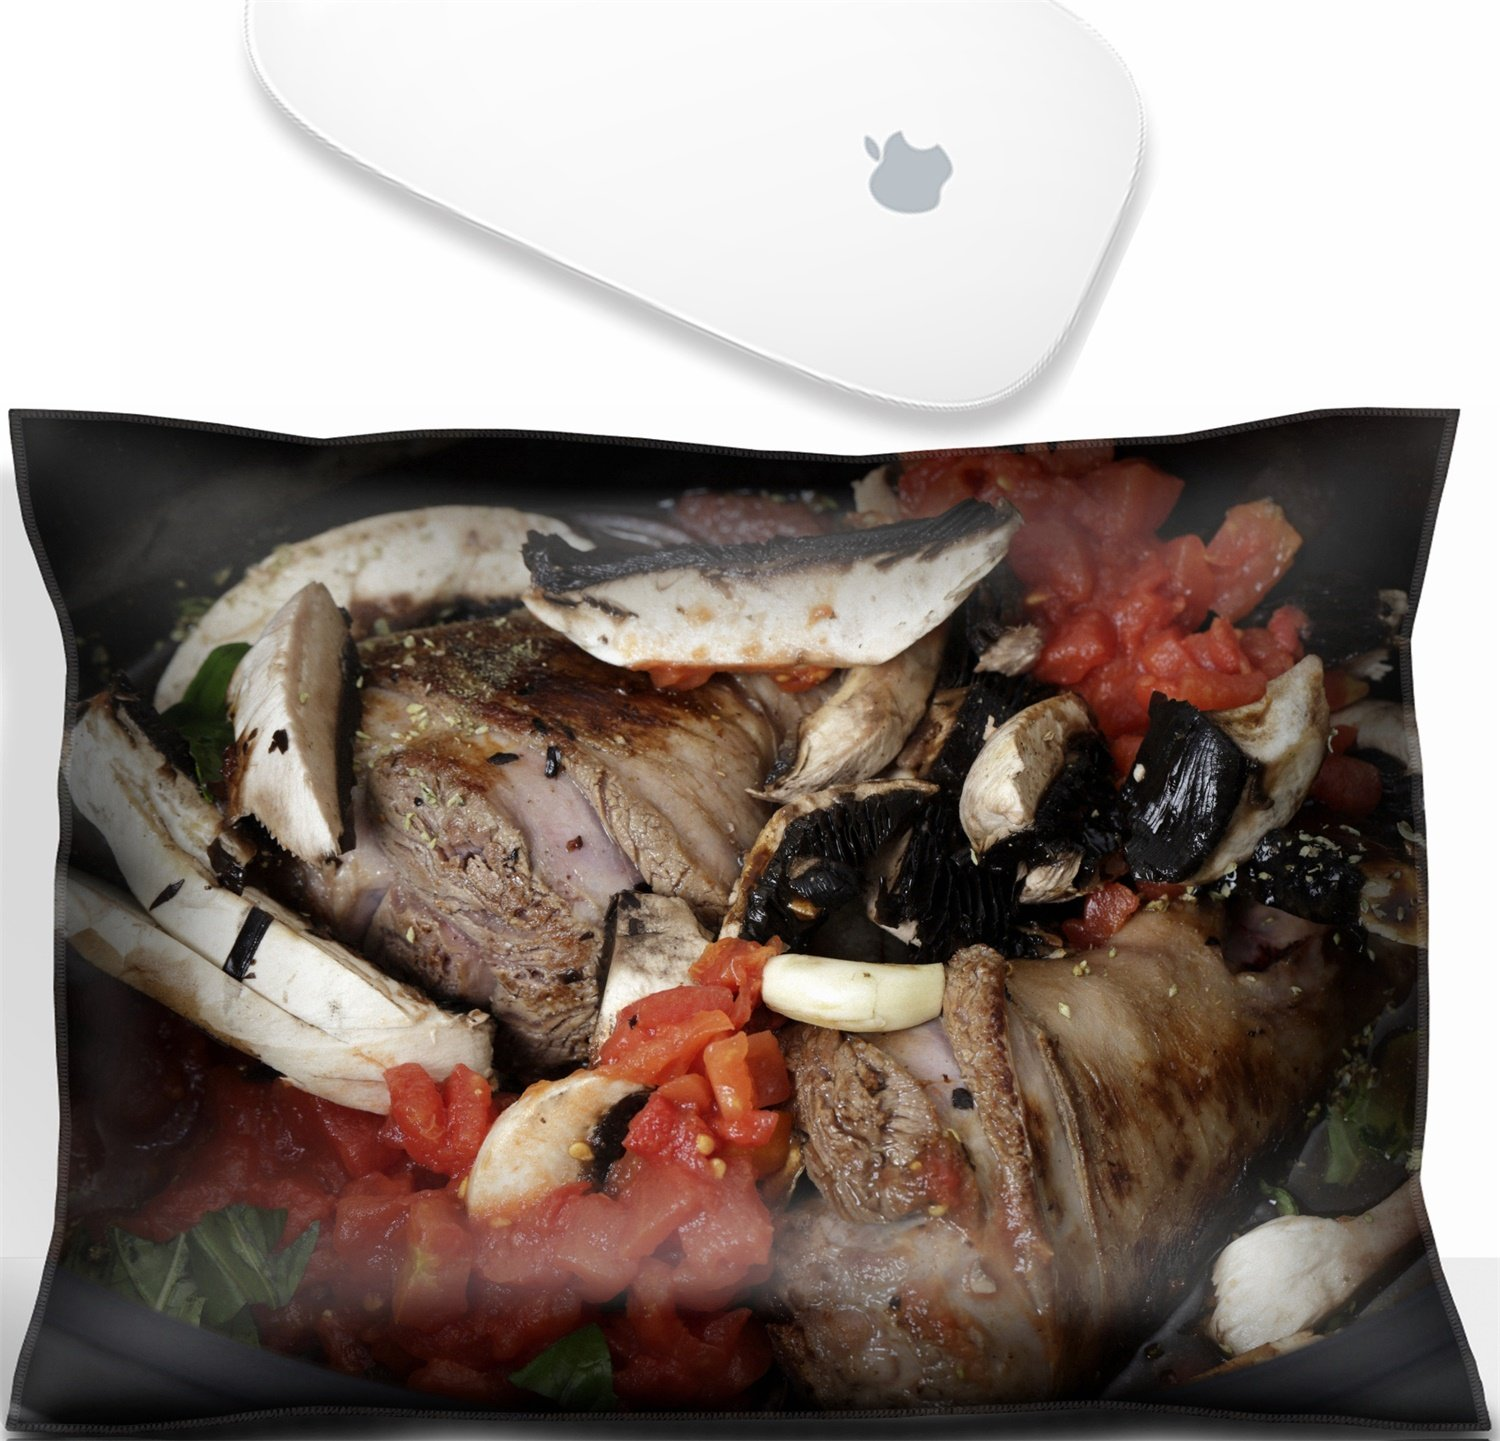 Luxlady Mouse Wrist Rest Office Decor Wrist Supporter Pillow IMAGE: 25865932 Two lamb shanks lightly browned ready for cooking in a slow cooker or crockpot with mushrooms tomatoes basil red wine and s